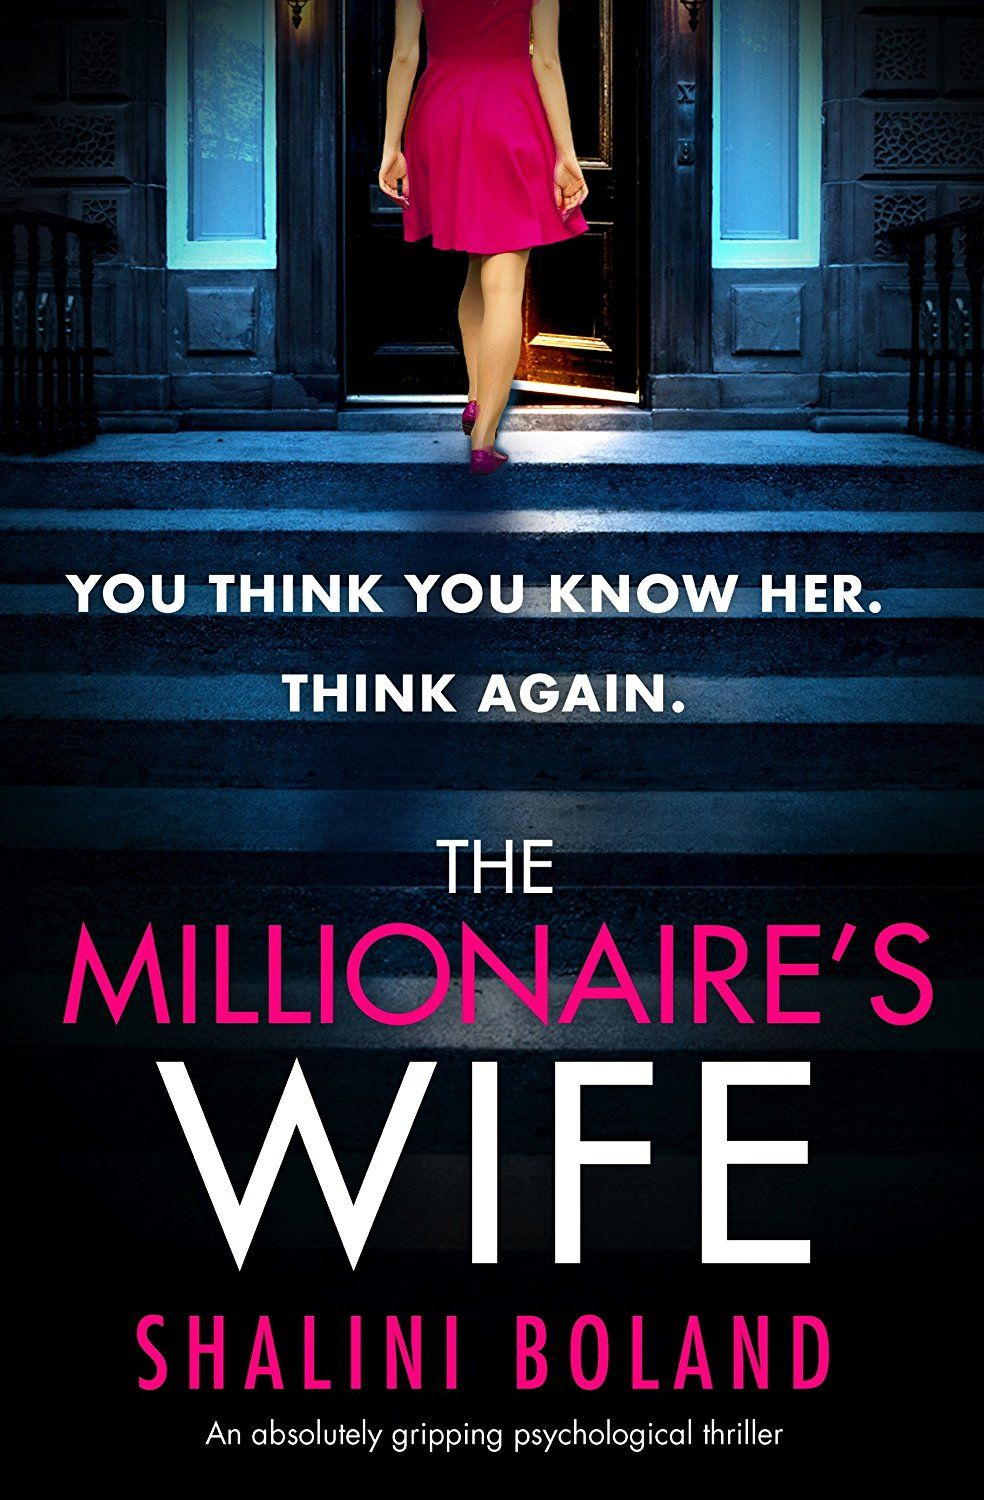 The Millionaire's Wife An absolutely gripping